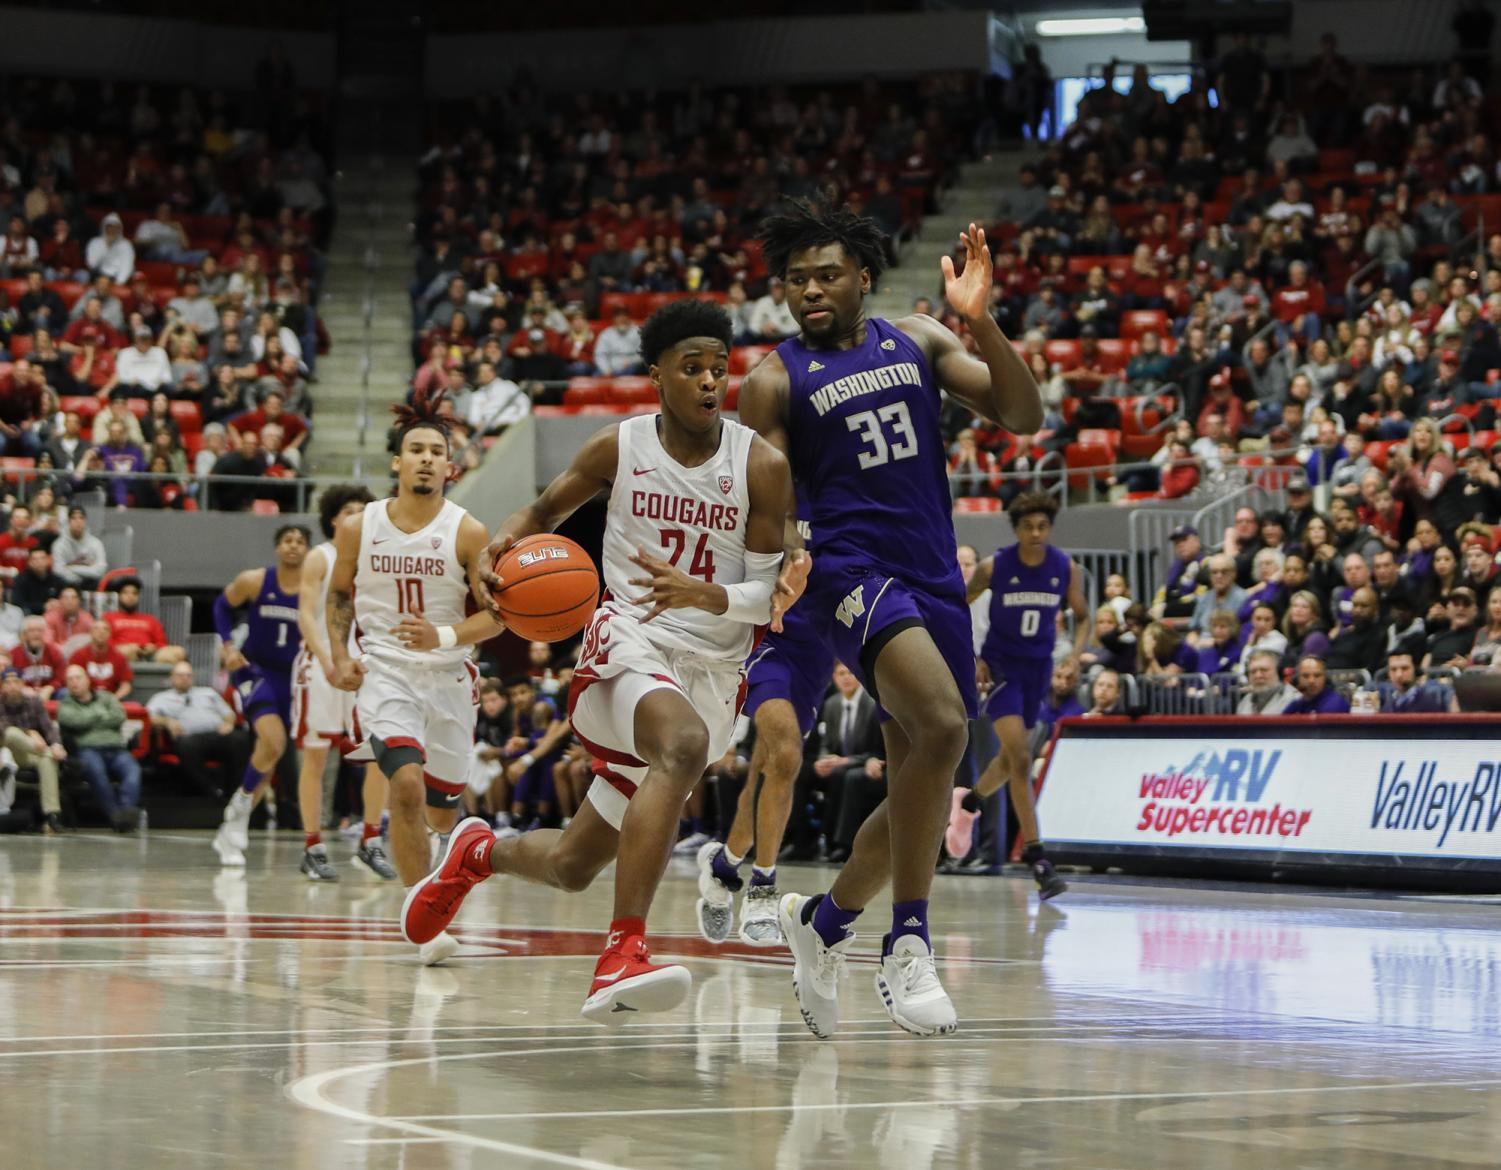 Freshman guard Noah Williams battles his way up the court against UW on Sunday at Beasley Coliseum.